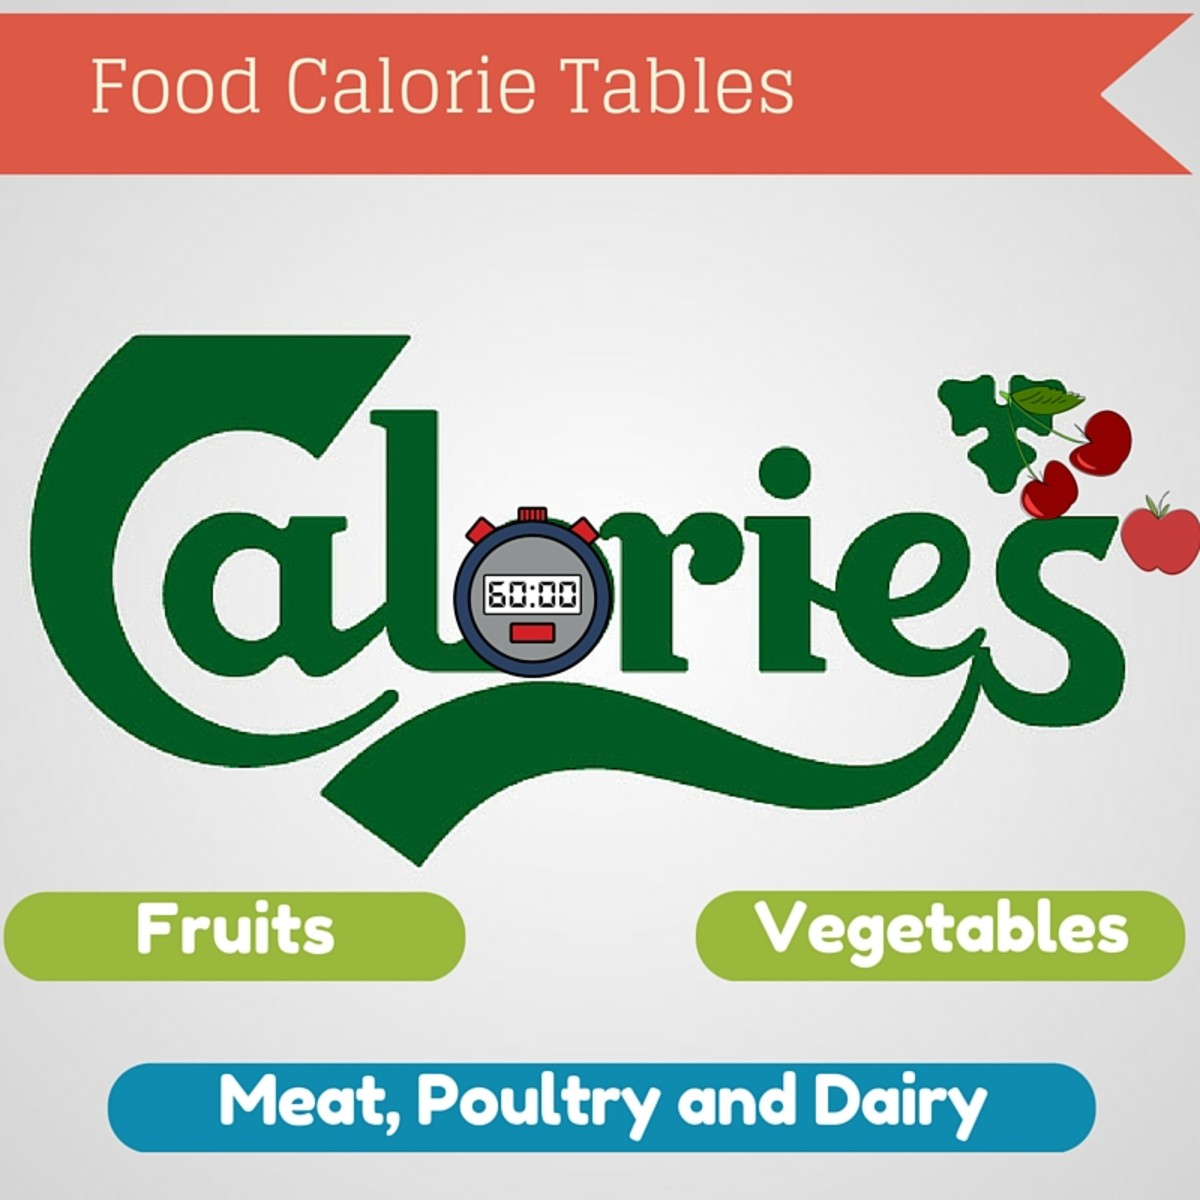 Food Calorie Quick Reference Tables | Caloriebee